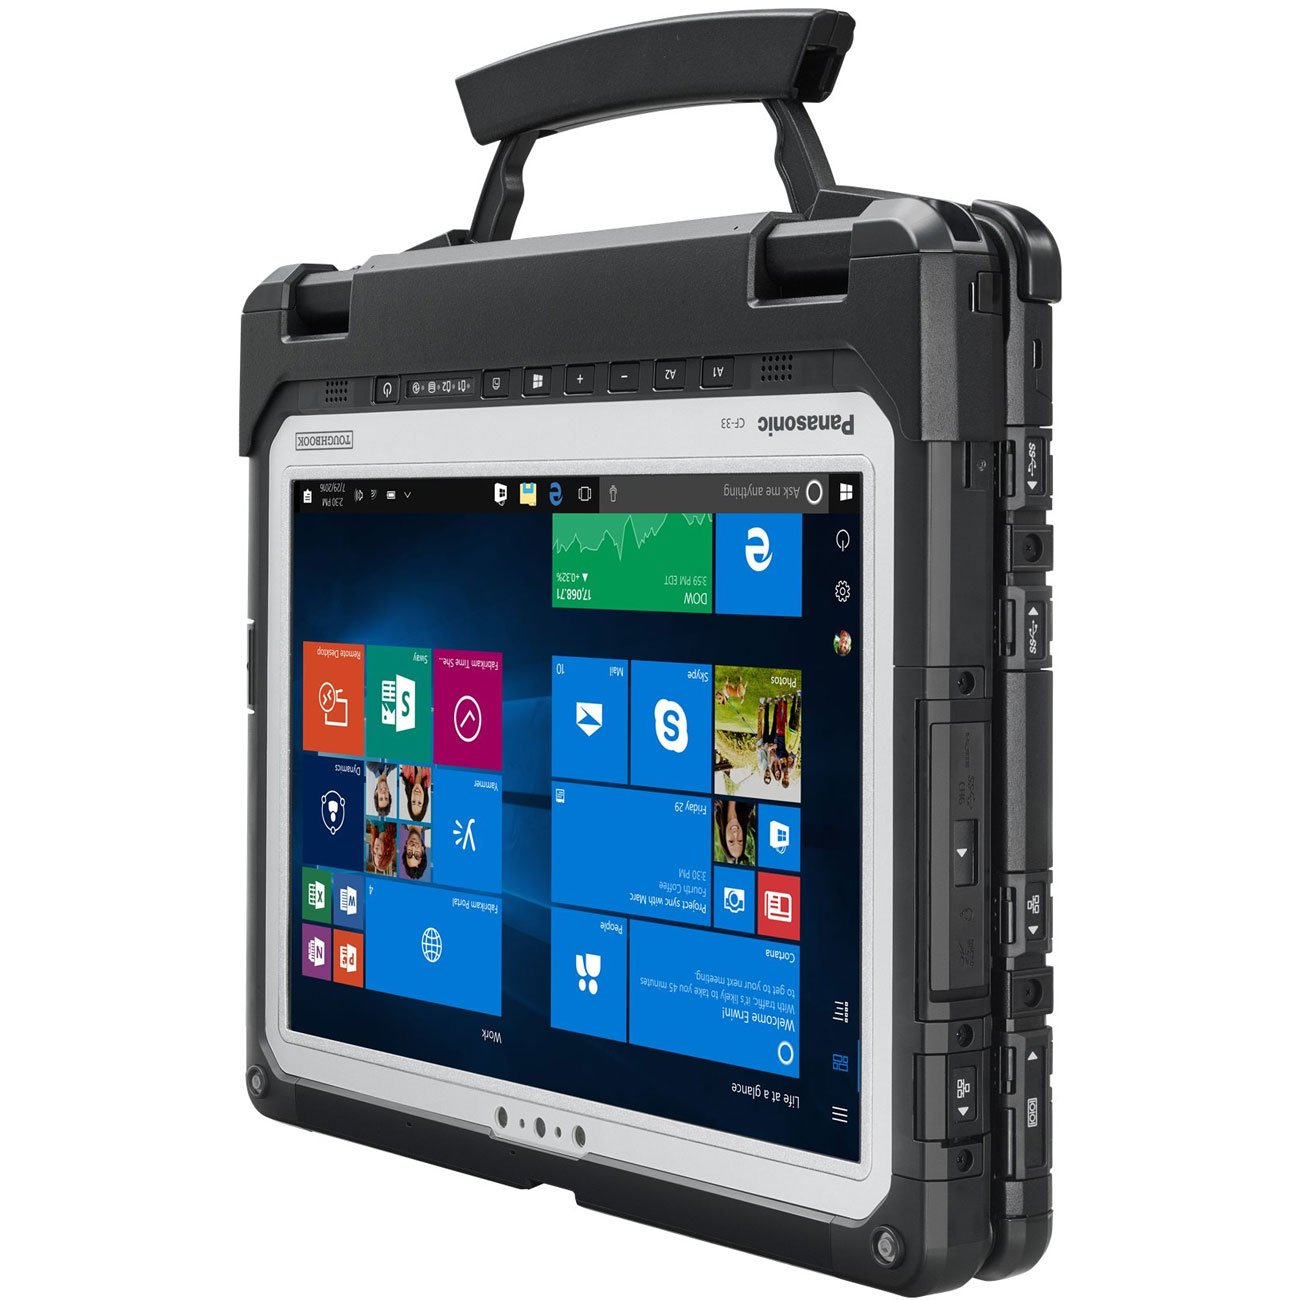 PANASONIC PERSONAL COMP CF-33AFHKZVM Toughbook 33 Tablet PC by PANASONIC PERSONAL COMP